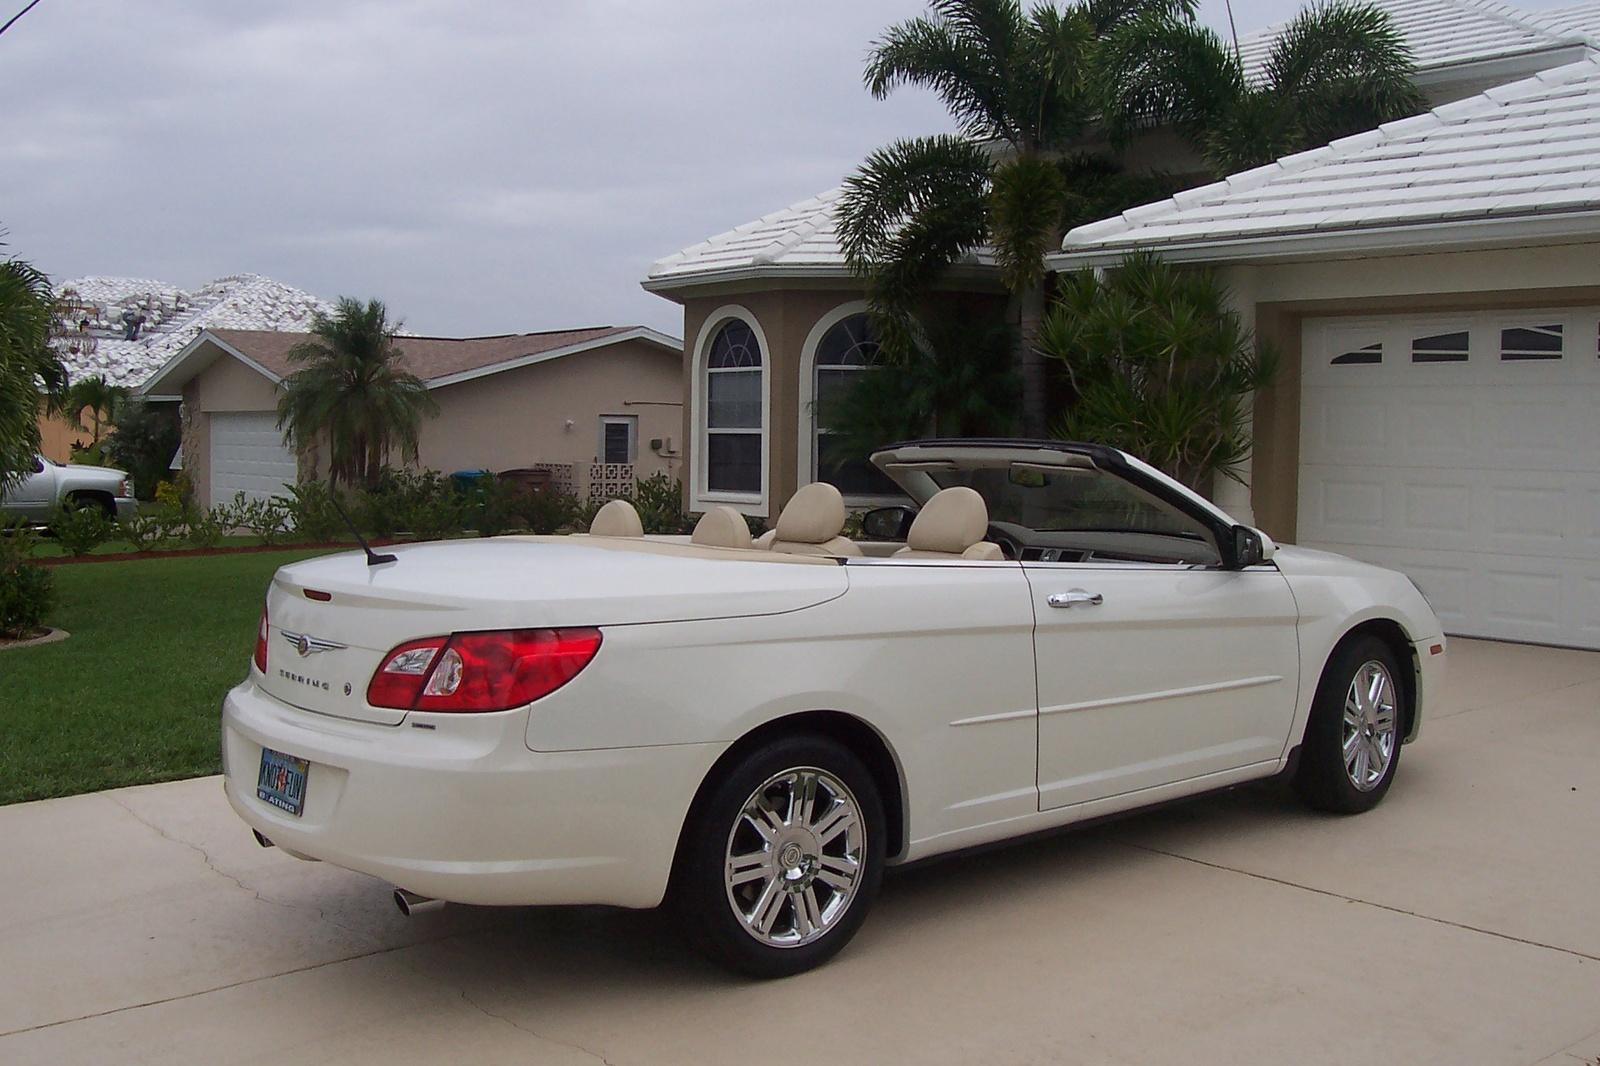 picture of 2008 chrysler sebring limited convertible exterior. Cars Review. Best American Auto & Cars Review